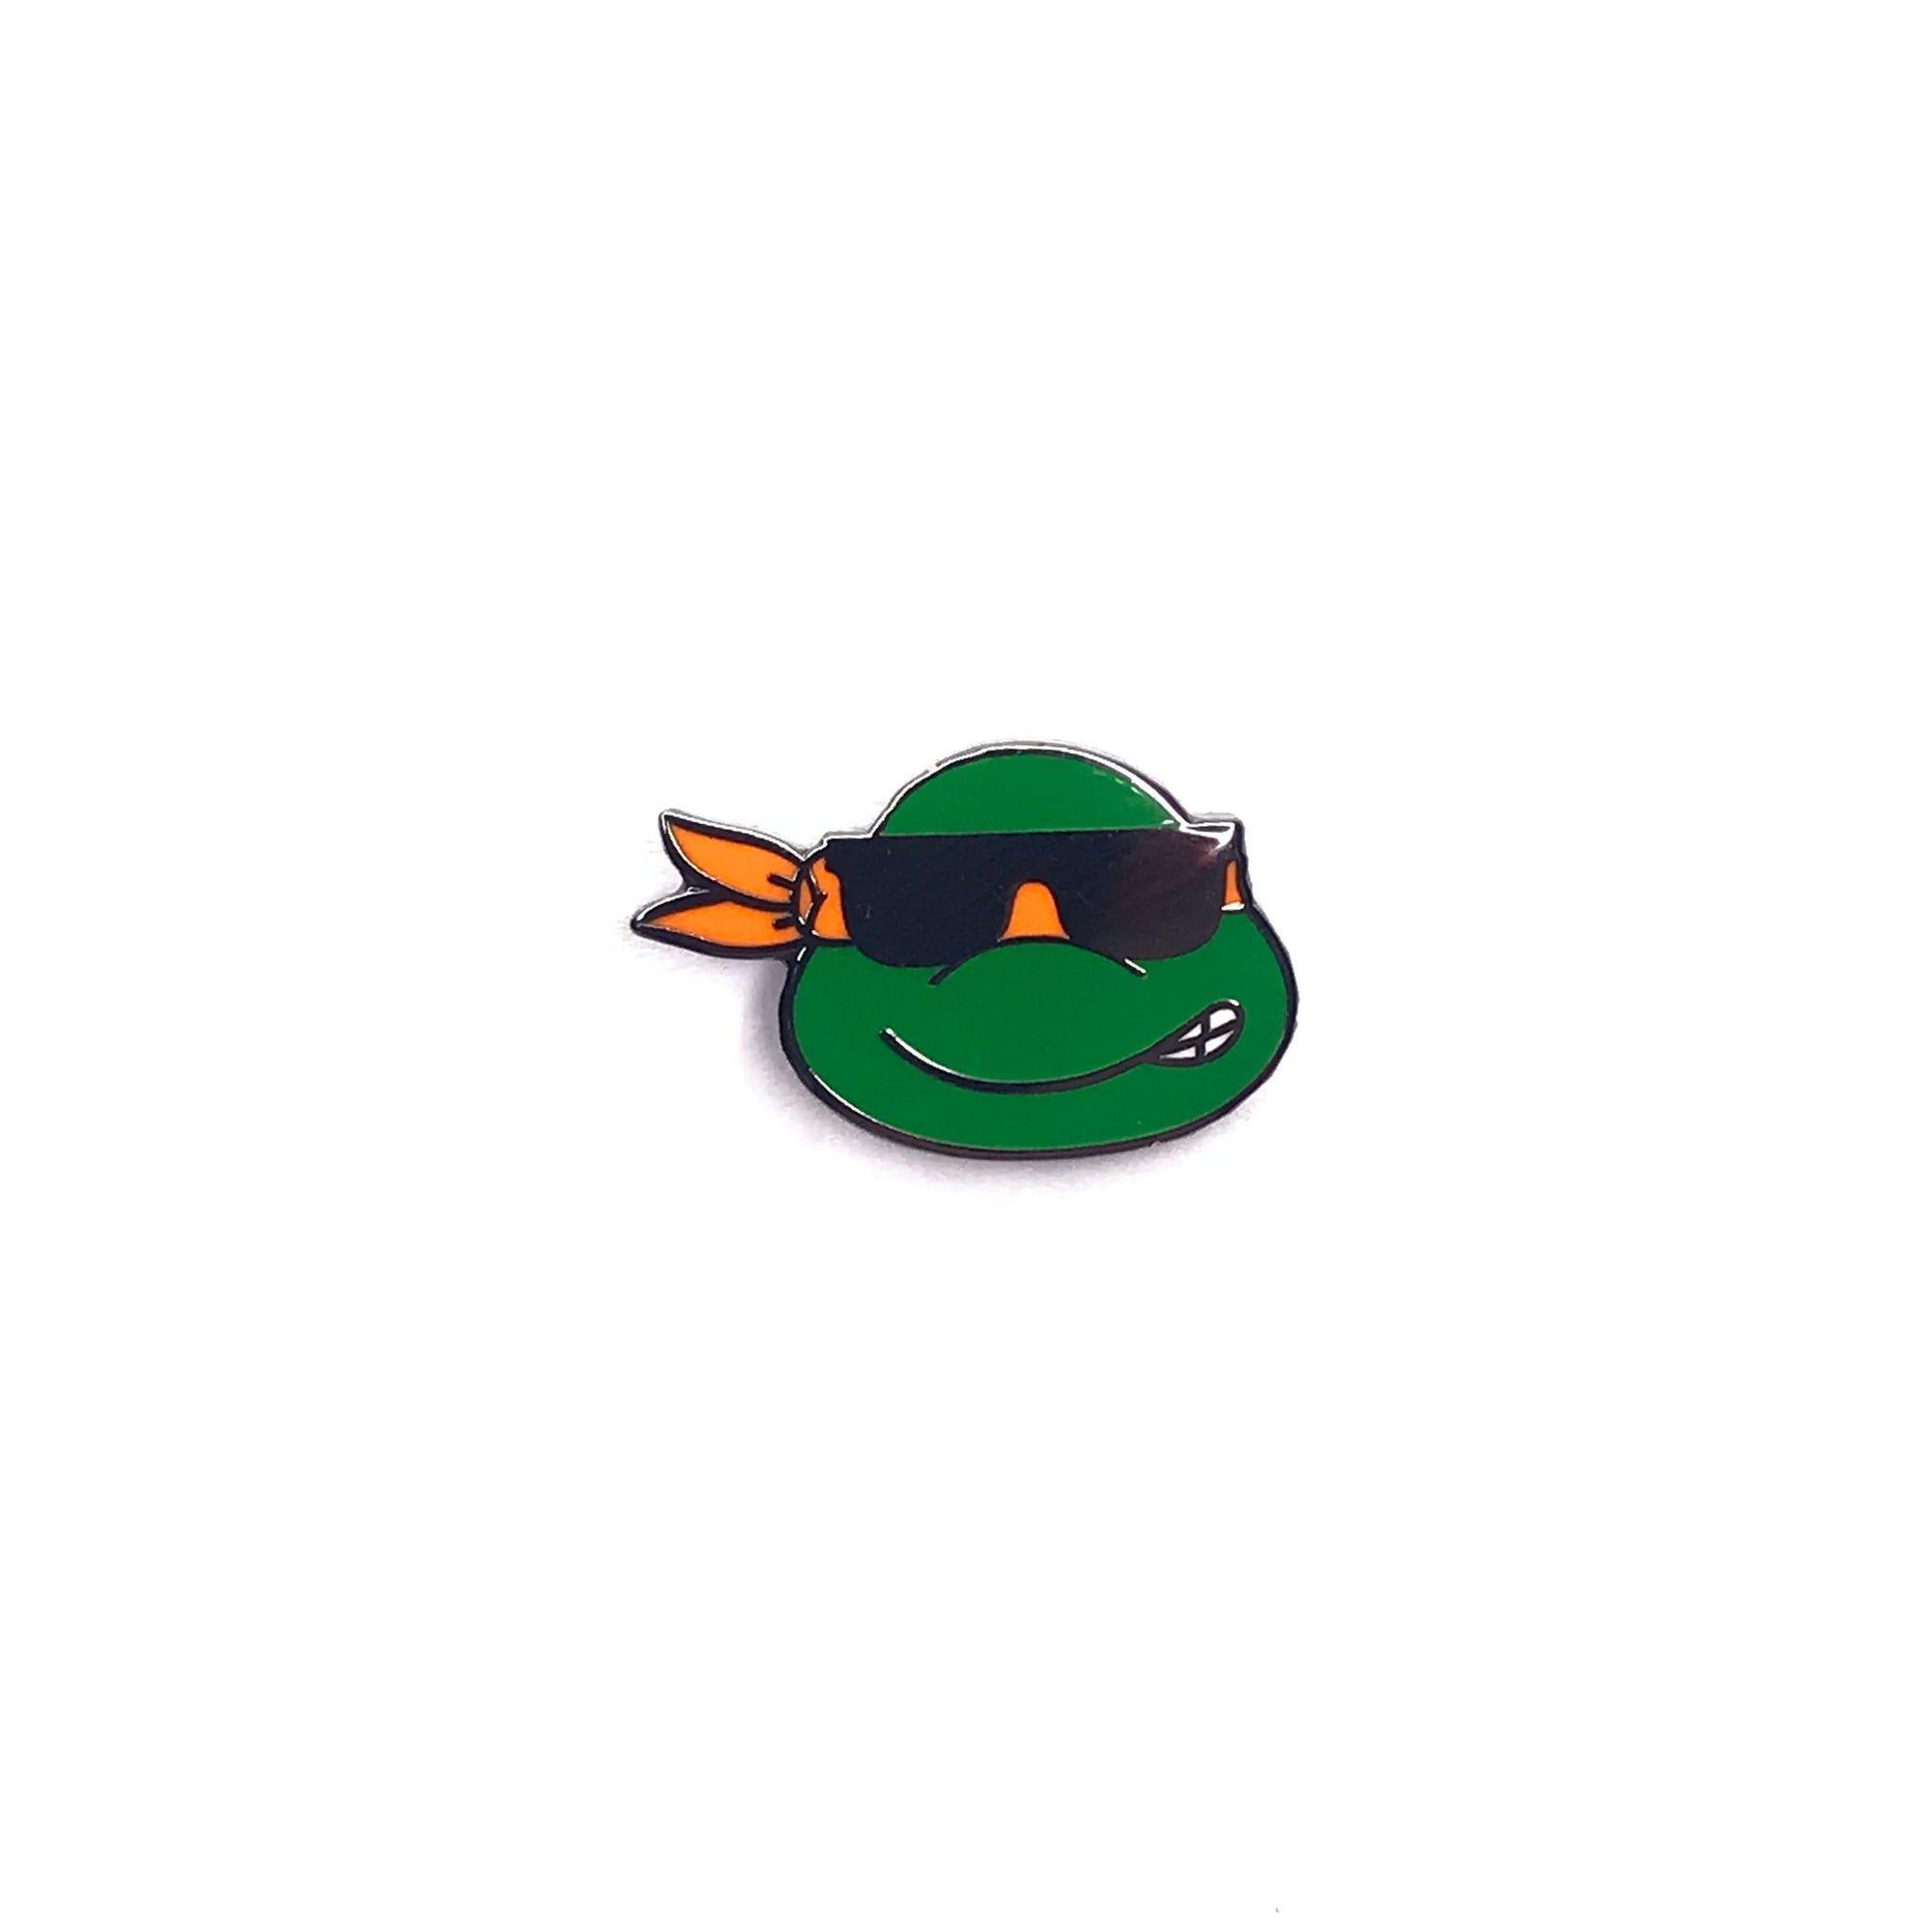 Michelangelo Sunglasses TMNT Emoji Pin